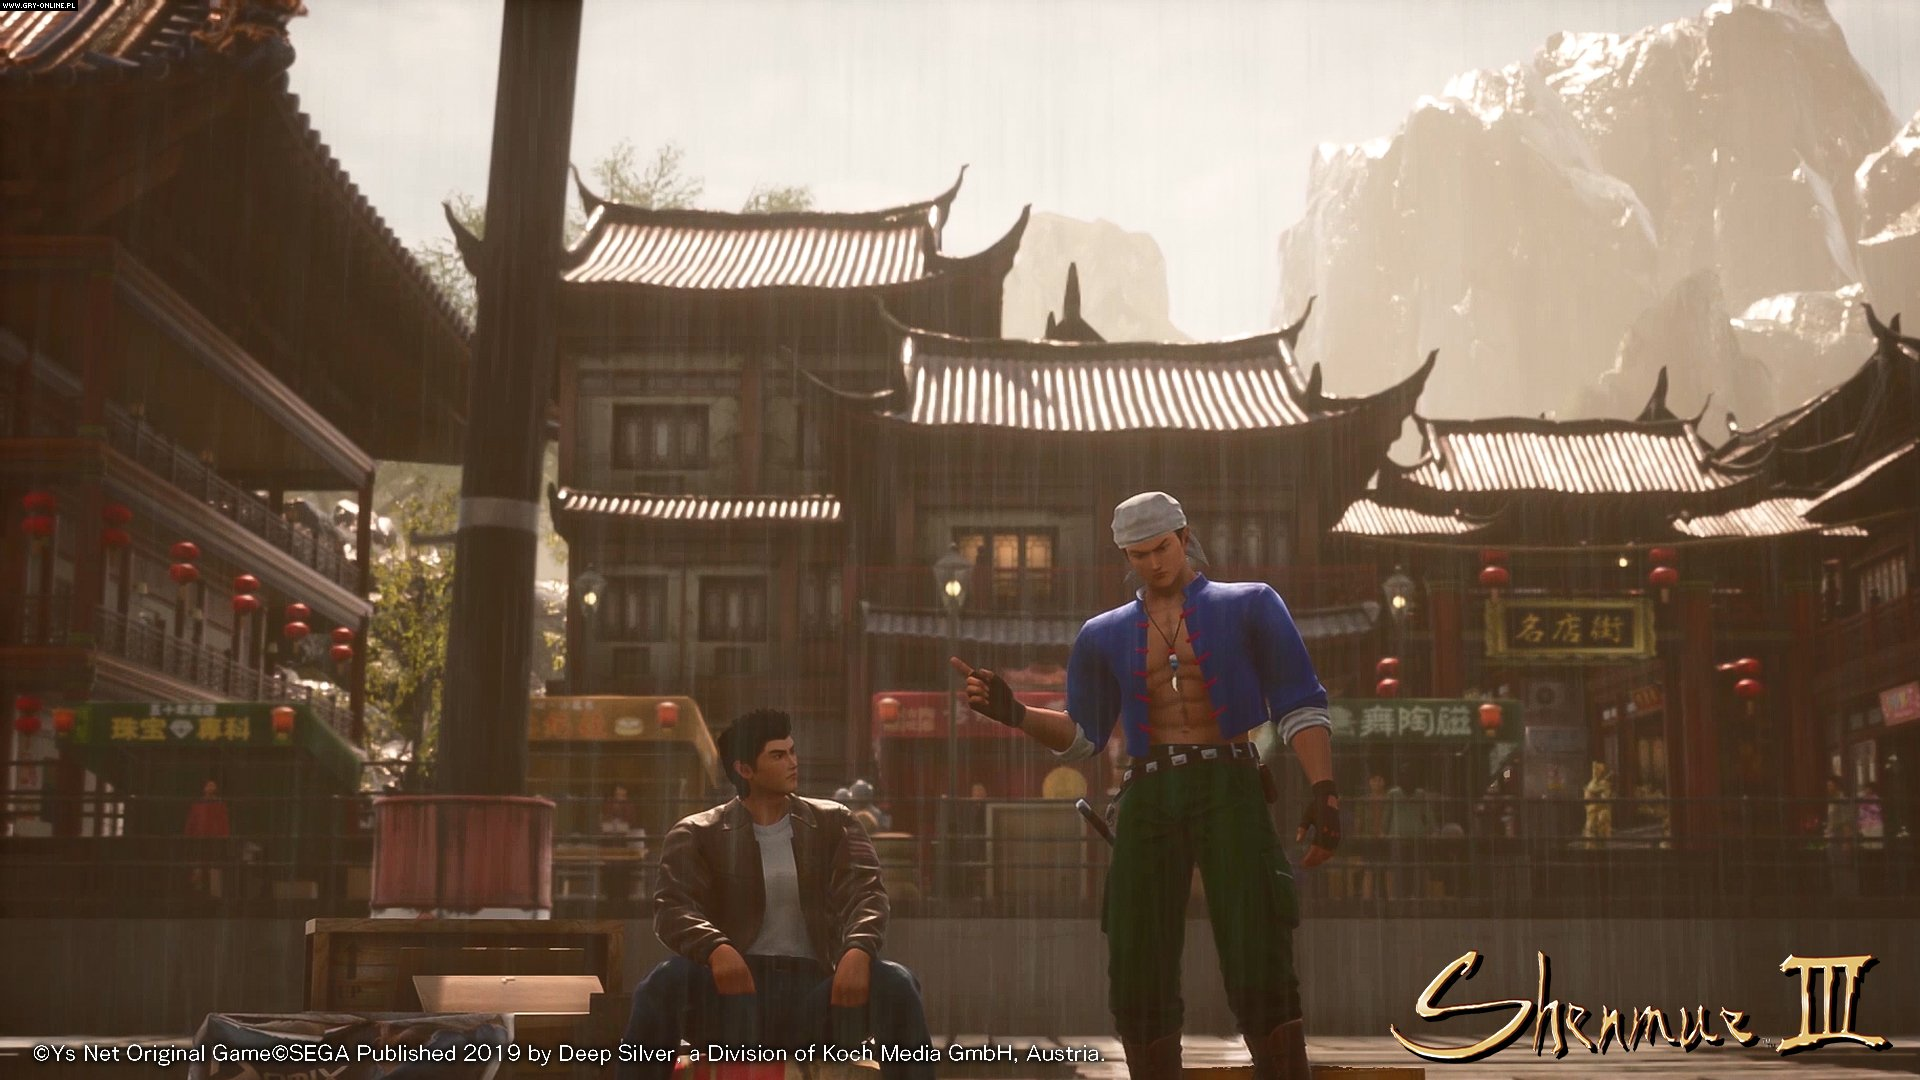 Shenmue III PC, PS4 Games Image 4/50, Ys Net, Deep Silver / Koch Media